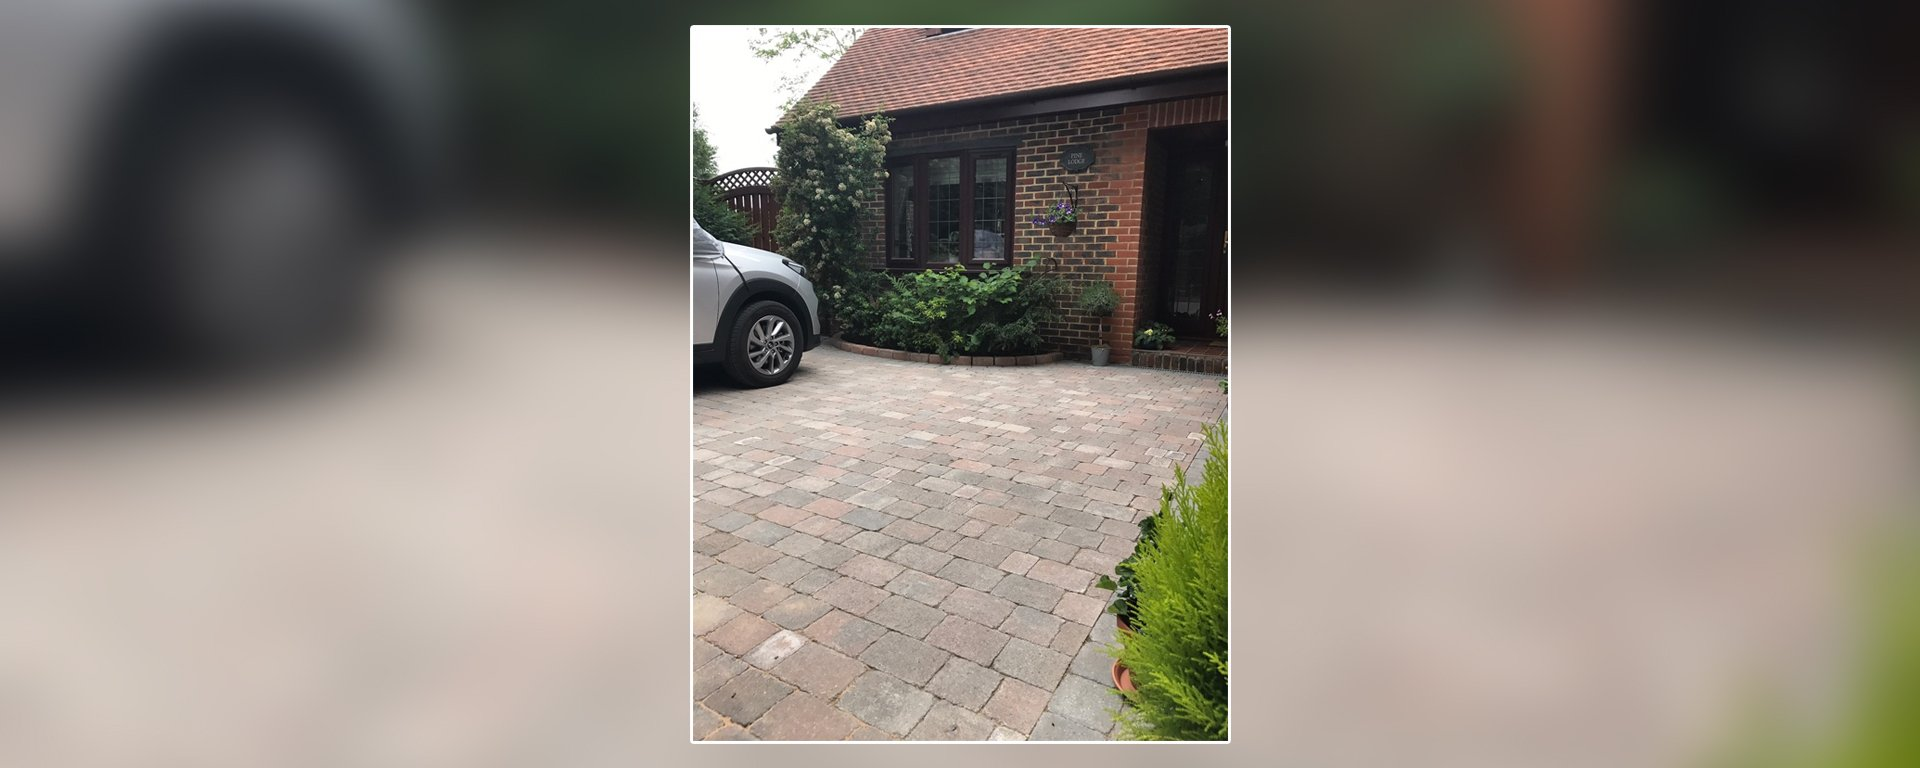 paved outdoor space